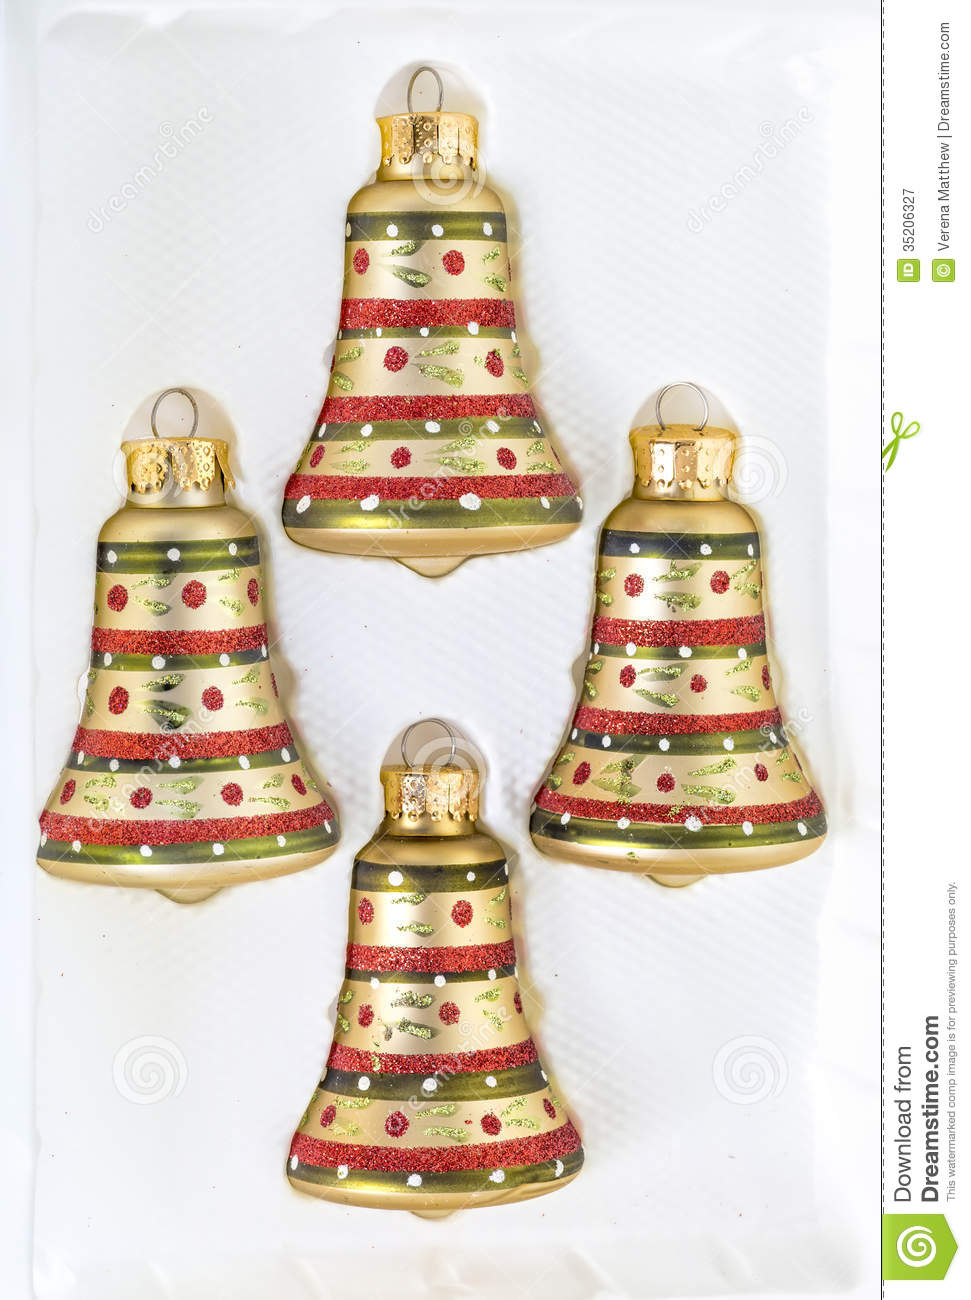 Christmas Bells Royalty Free Stock Photography - Image: 35206327